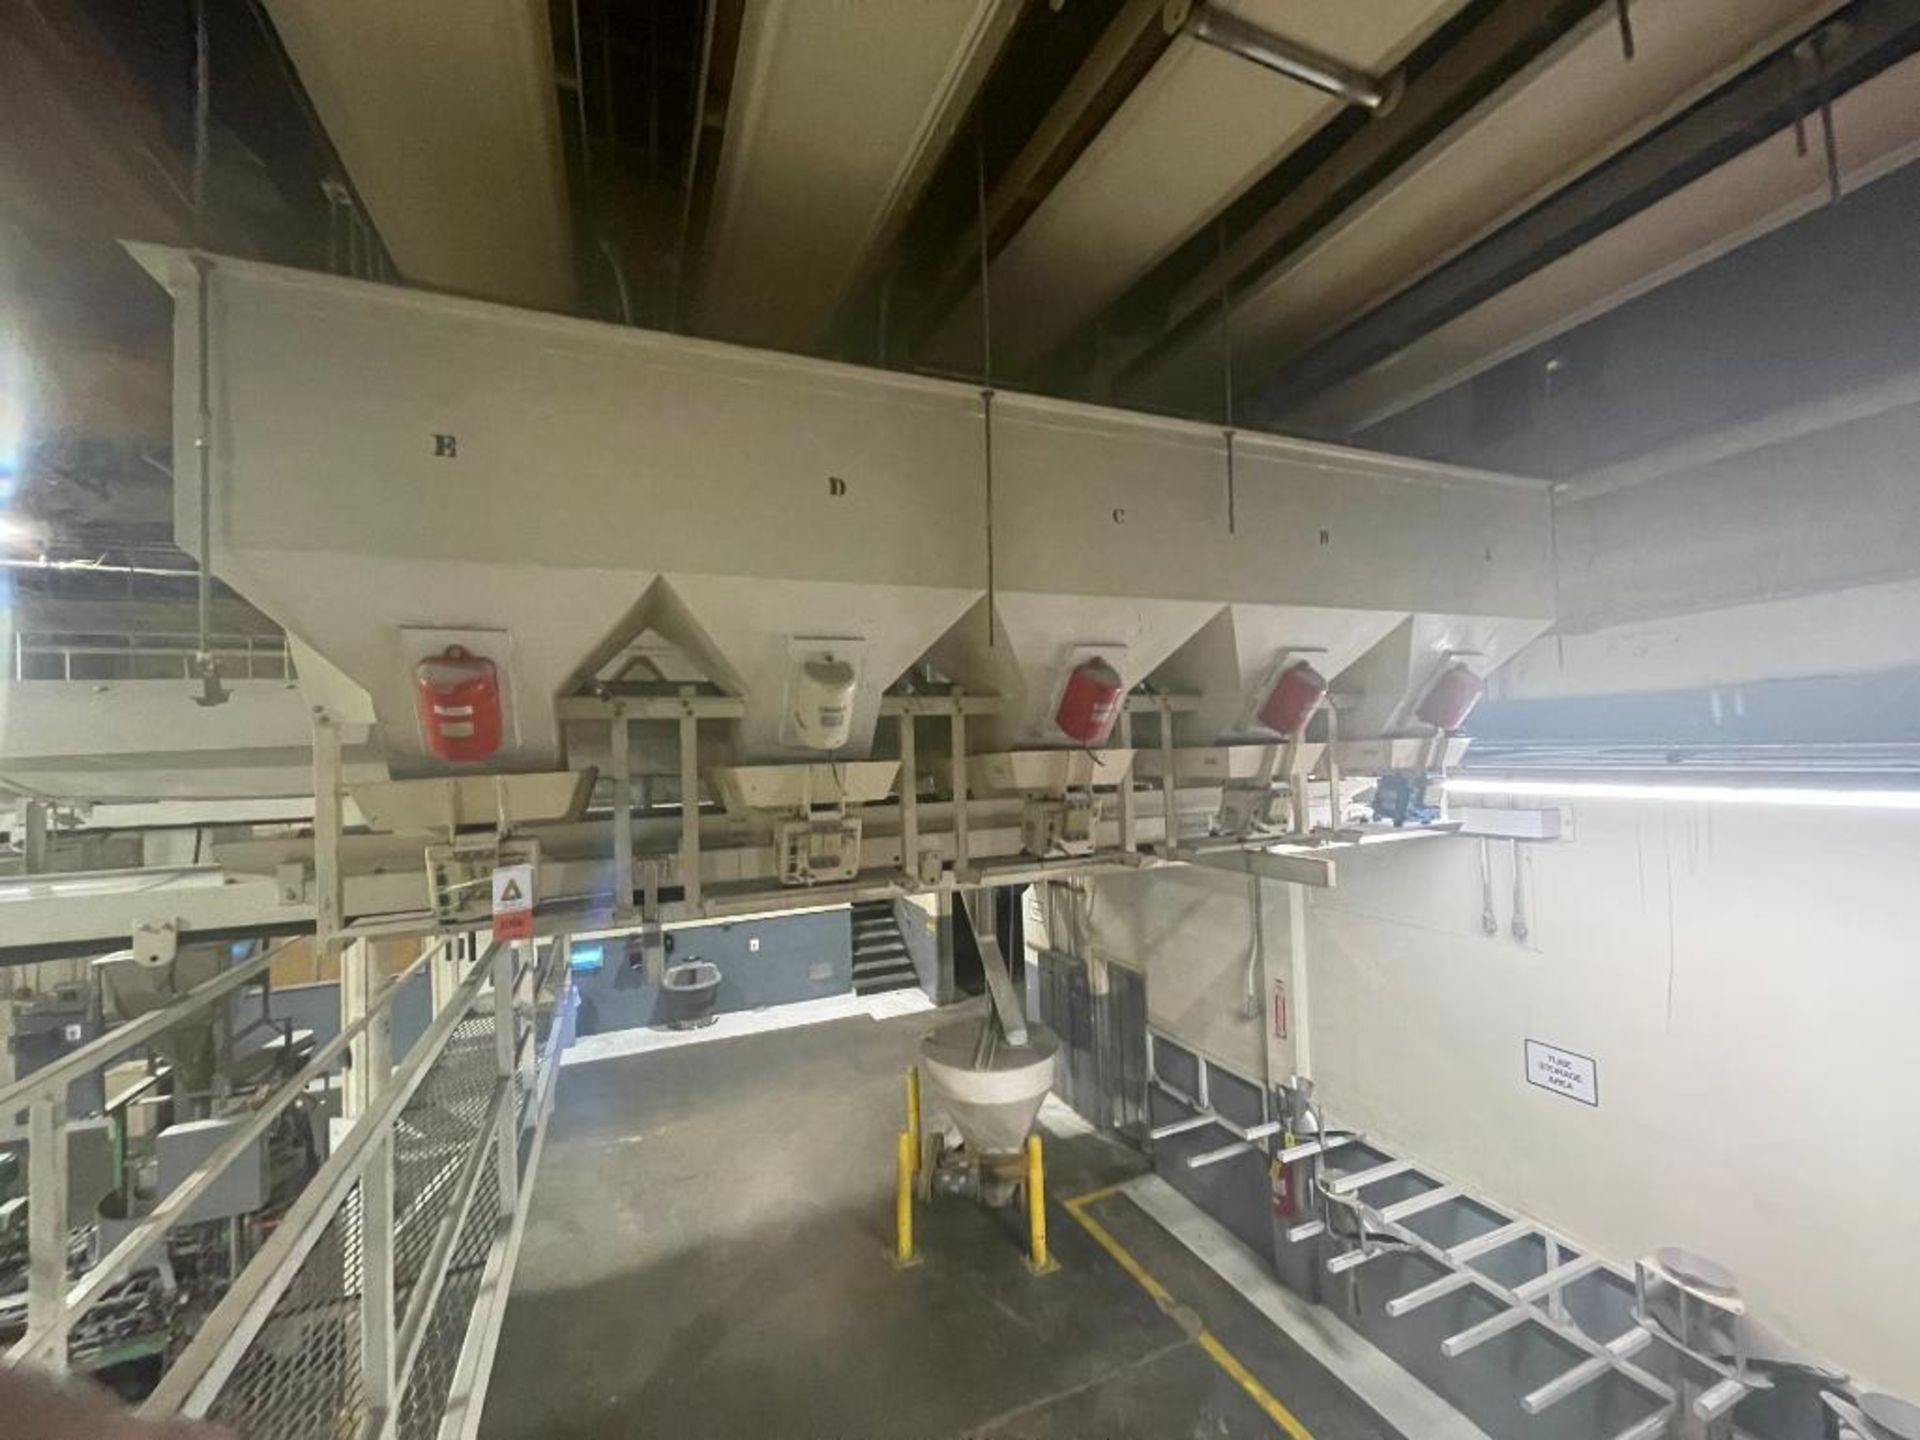 Aseeco 5-bin blending system with 5 Syntron vibratory feeders on bottom - Image 12 of 12